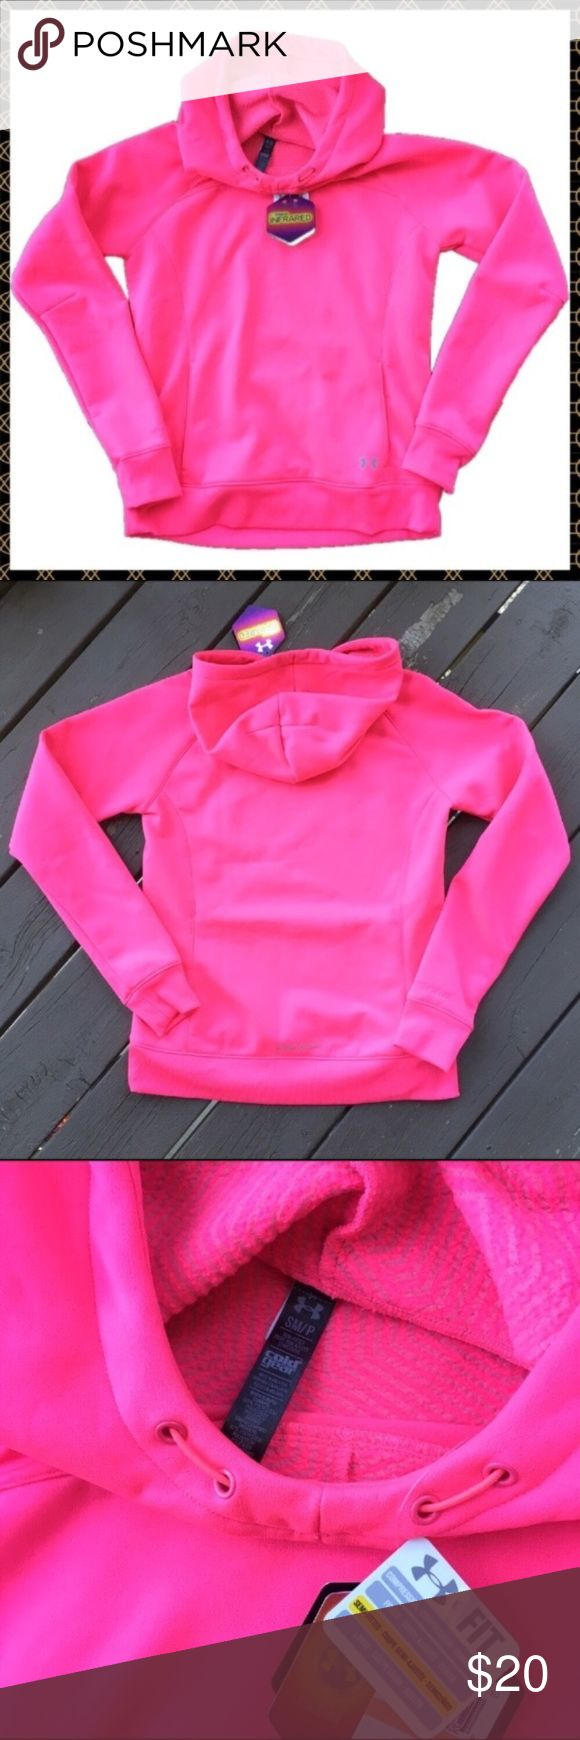 NWT Under Armour ColdGear Infrared Storm Hoodie Women's ColdGear Infrared Armour Fleece Storm Hoodie. Brand spanking new with tags in a gorgeous pink color. No flaws at all. Size small. The last picture is just to show the fit. I'm only looking to sell at this time so sorry but no trades. I have listed this sweatshirt at the lowest price point I can possibly accept so my listing price is firm. Under Armour Tops Sweatshirts & Hoodies